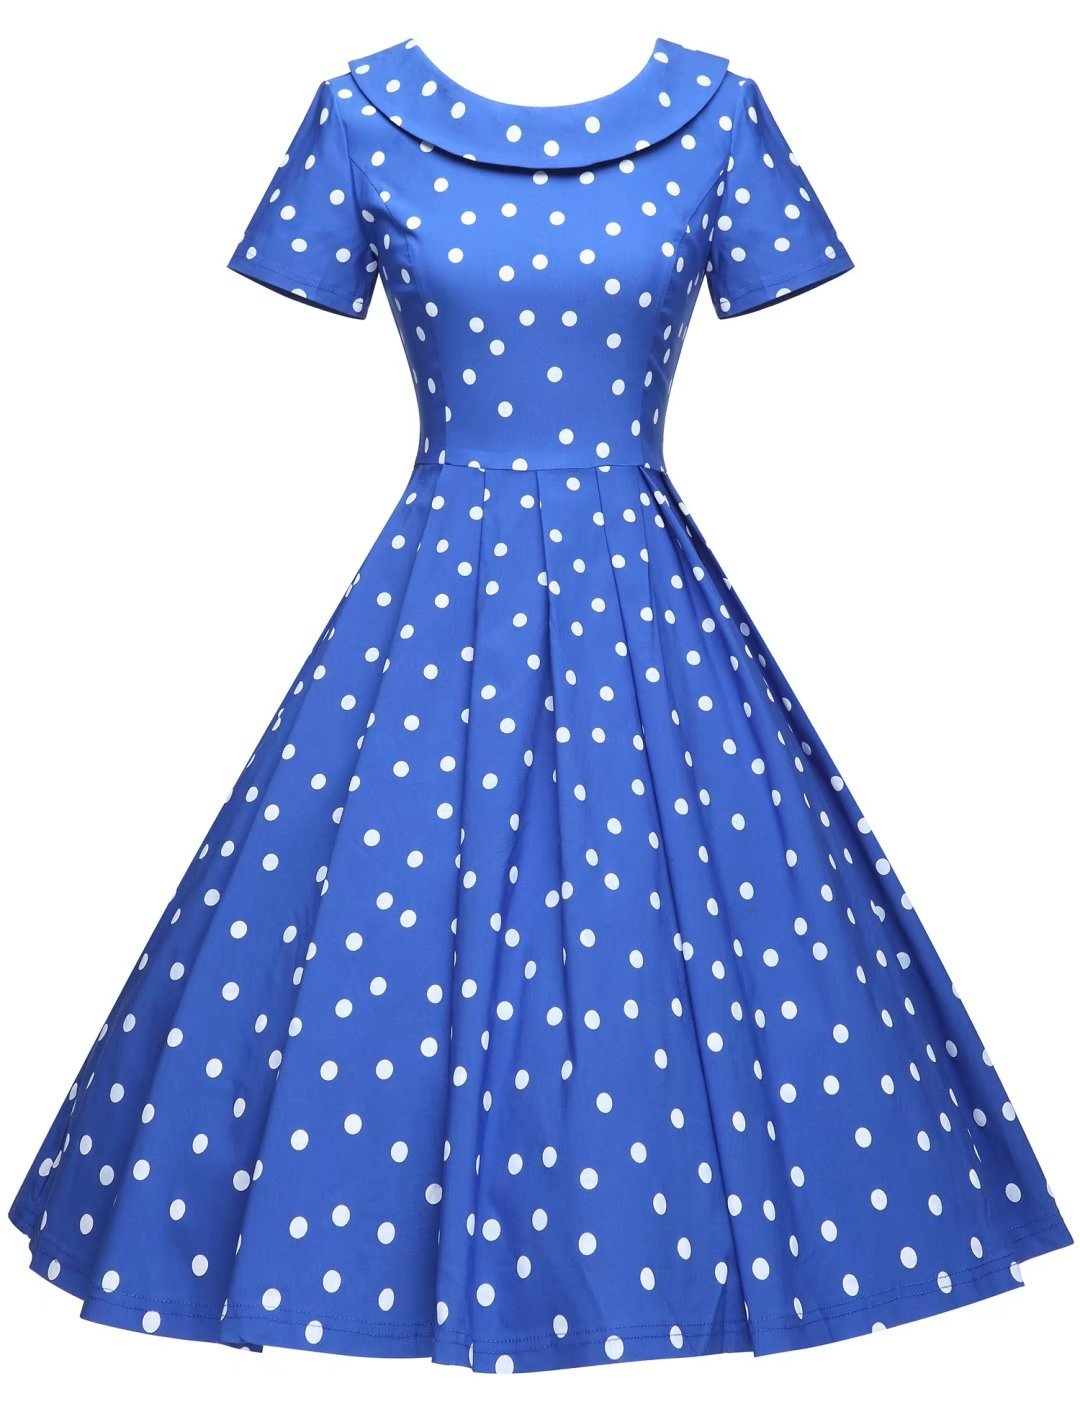 GownTown Women's 1950s Polka Dot Vintage Dresses Audrey Hepburn Style Party Dresses,Royal Blue,Medium by GownTown